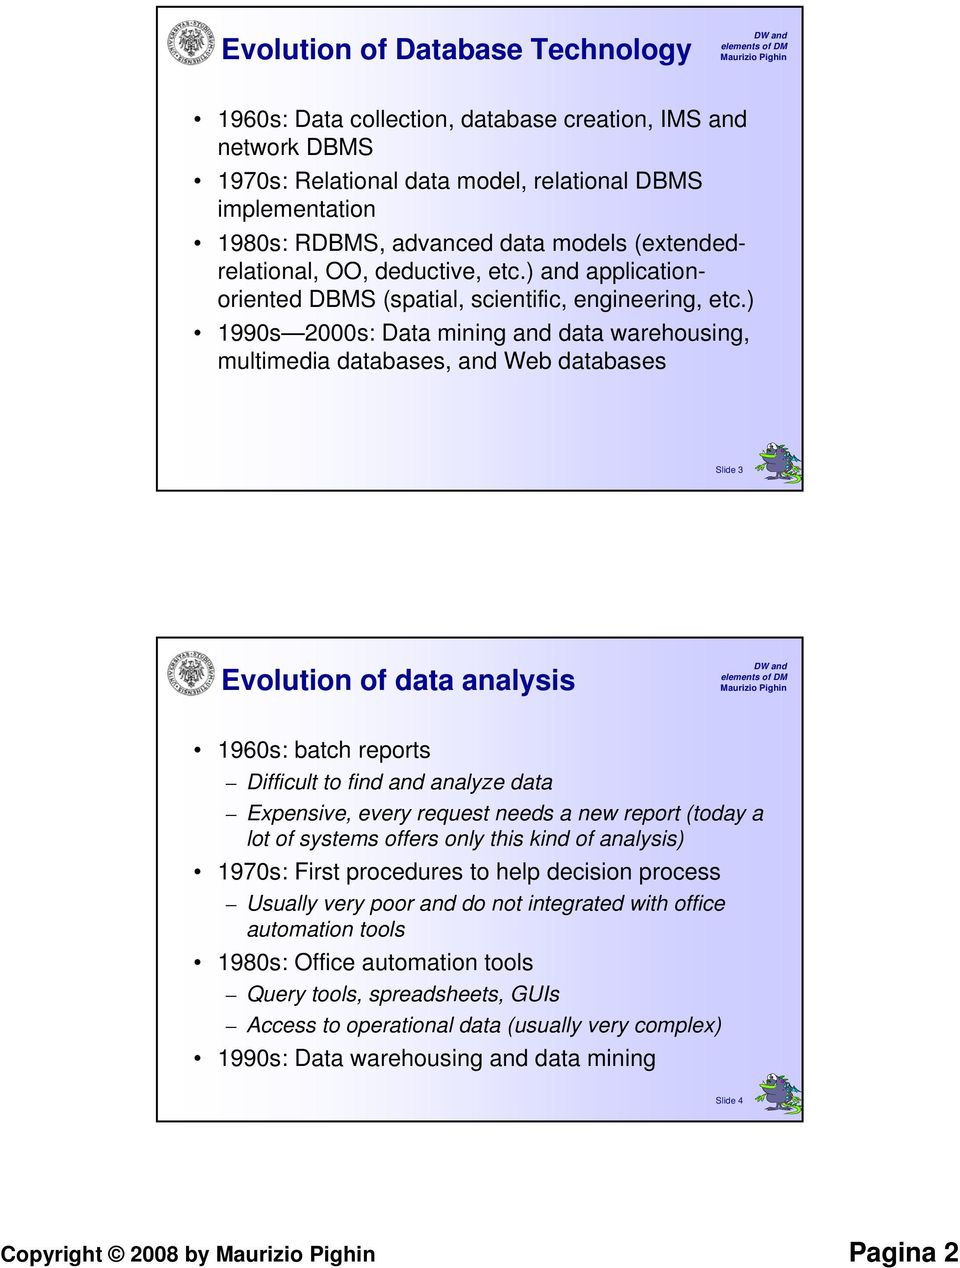 ) 1990s 2000s: Data mining and data warehousing, multimedia databases, and Web databases Slide 3 Evolution of data analysis 1960s: batch reports Difficult to find and analyze data Expensive, every